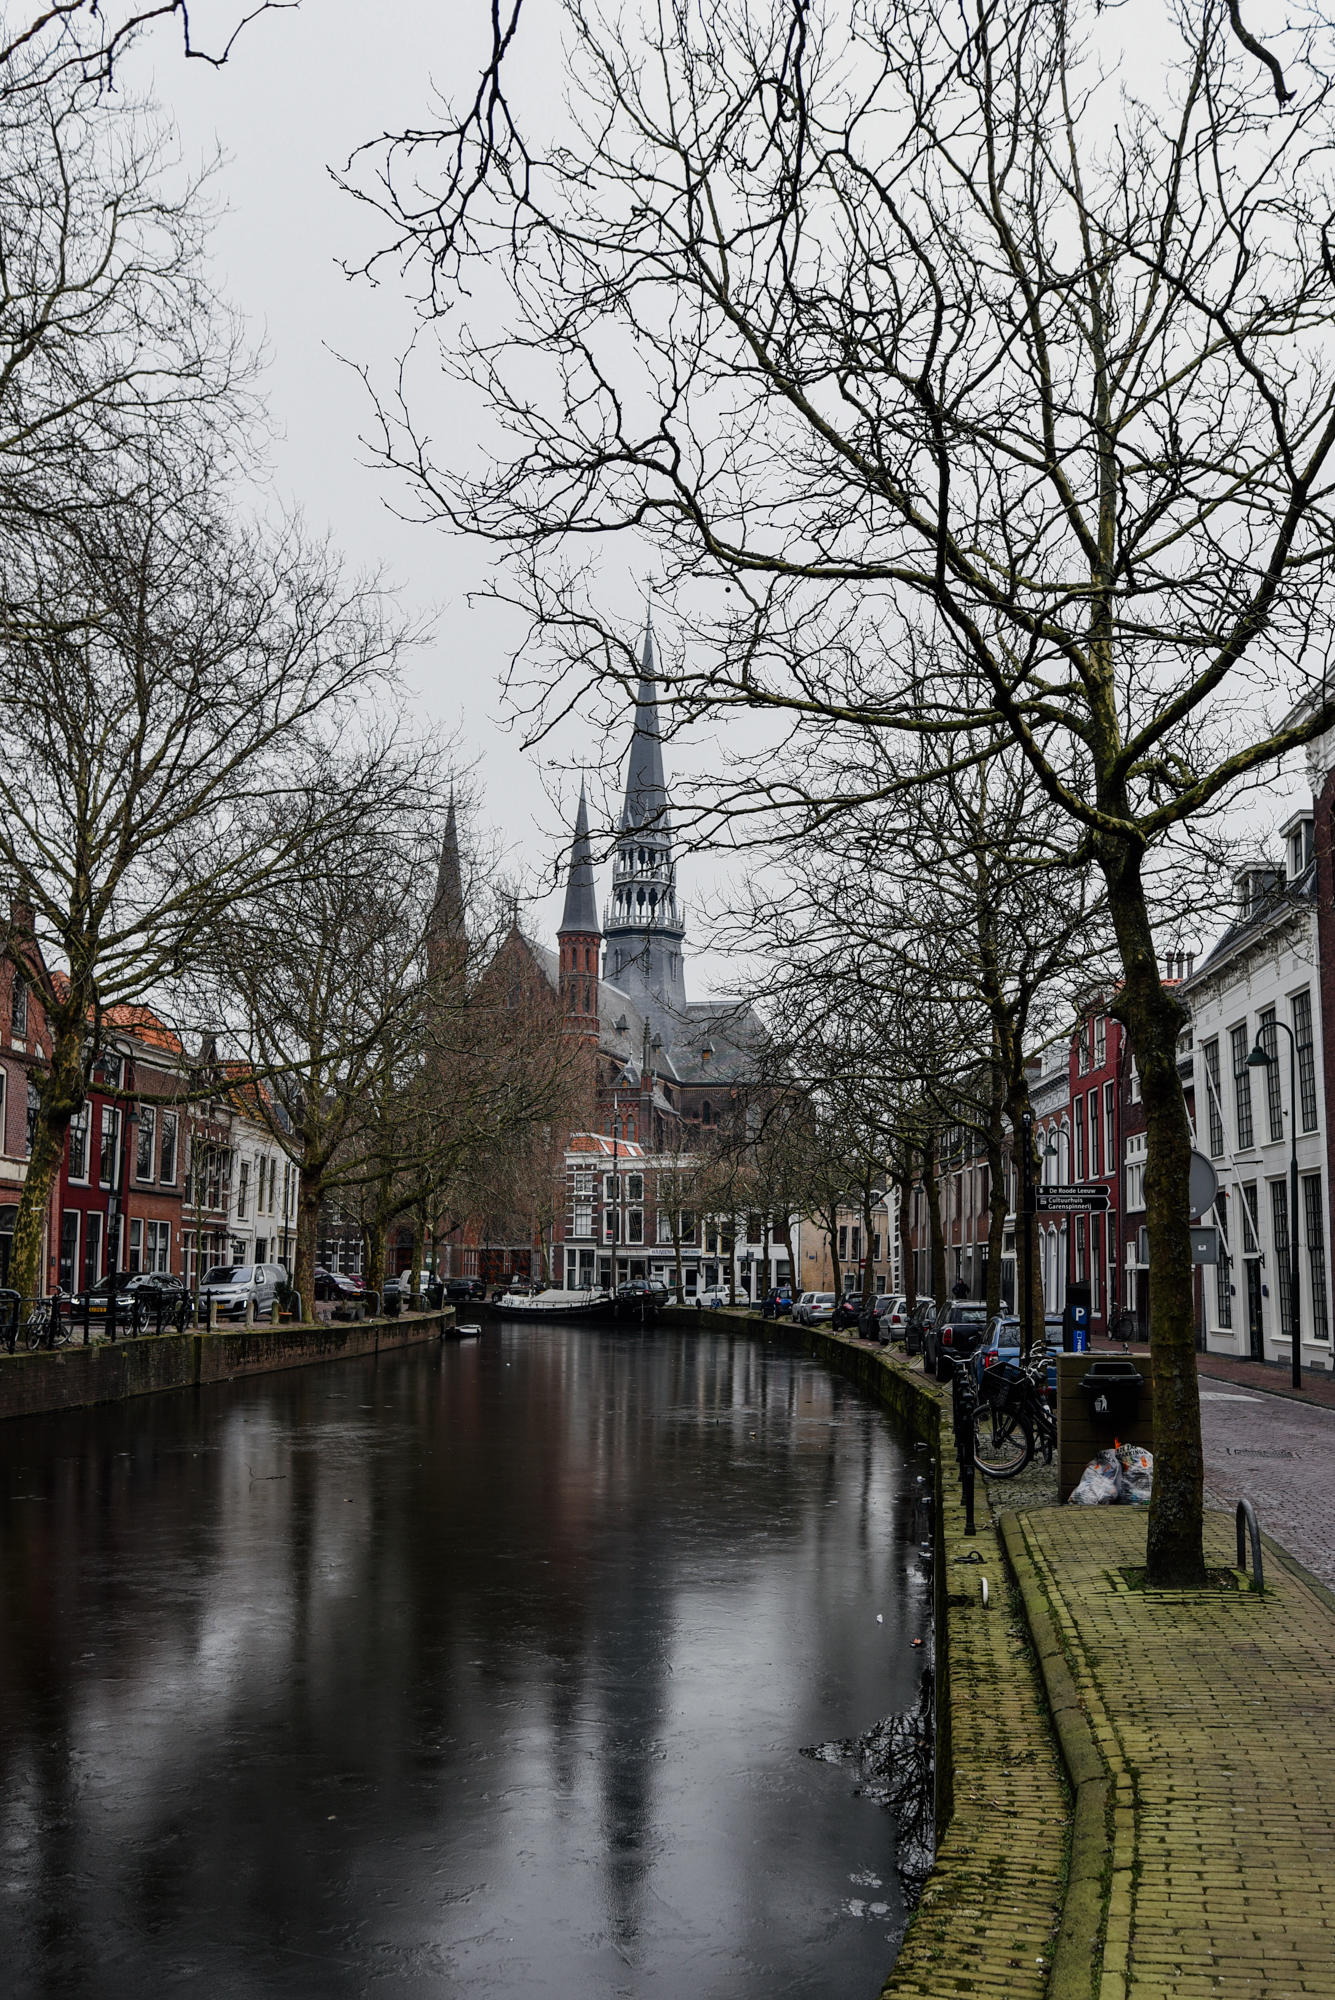 Water Canal views in Gouda The Netherlands